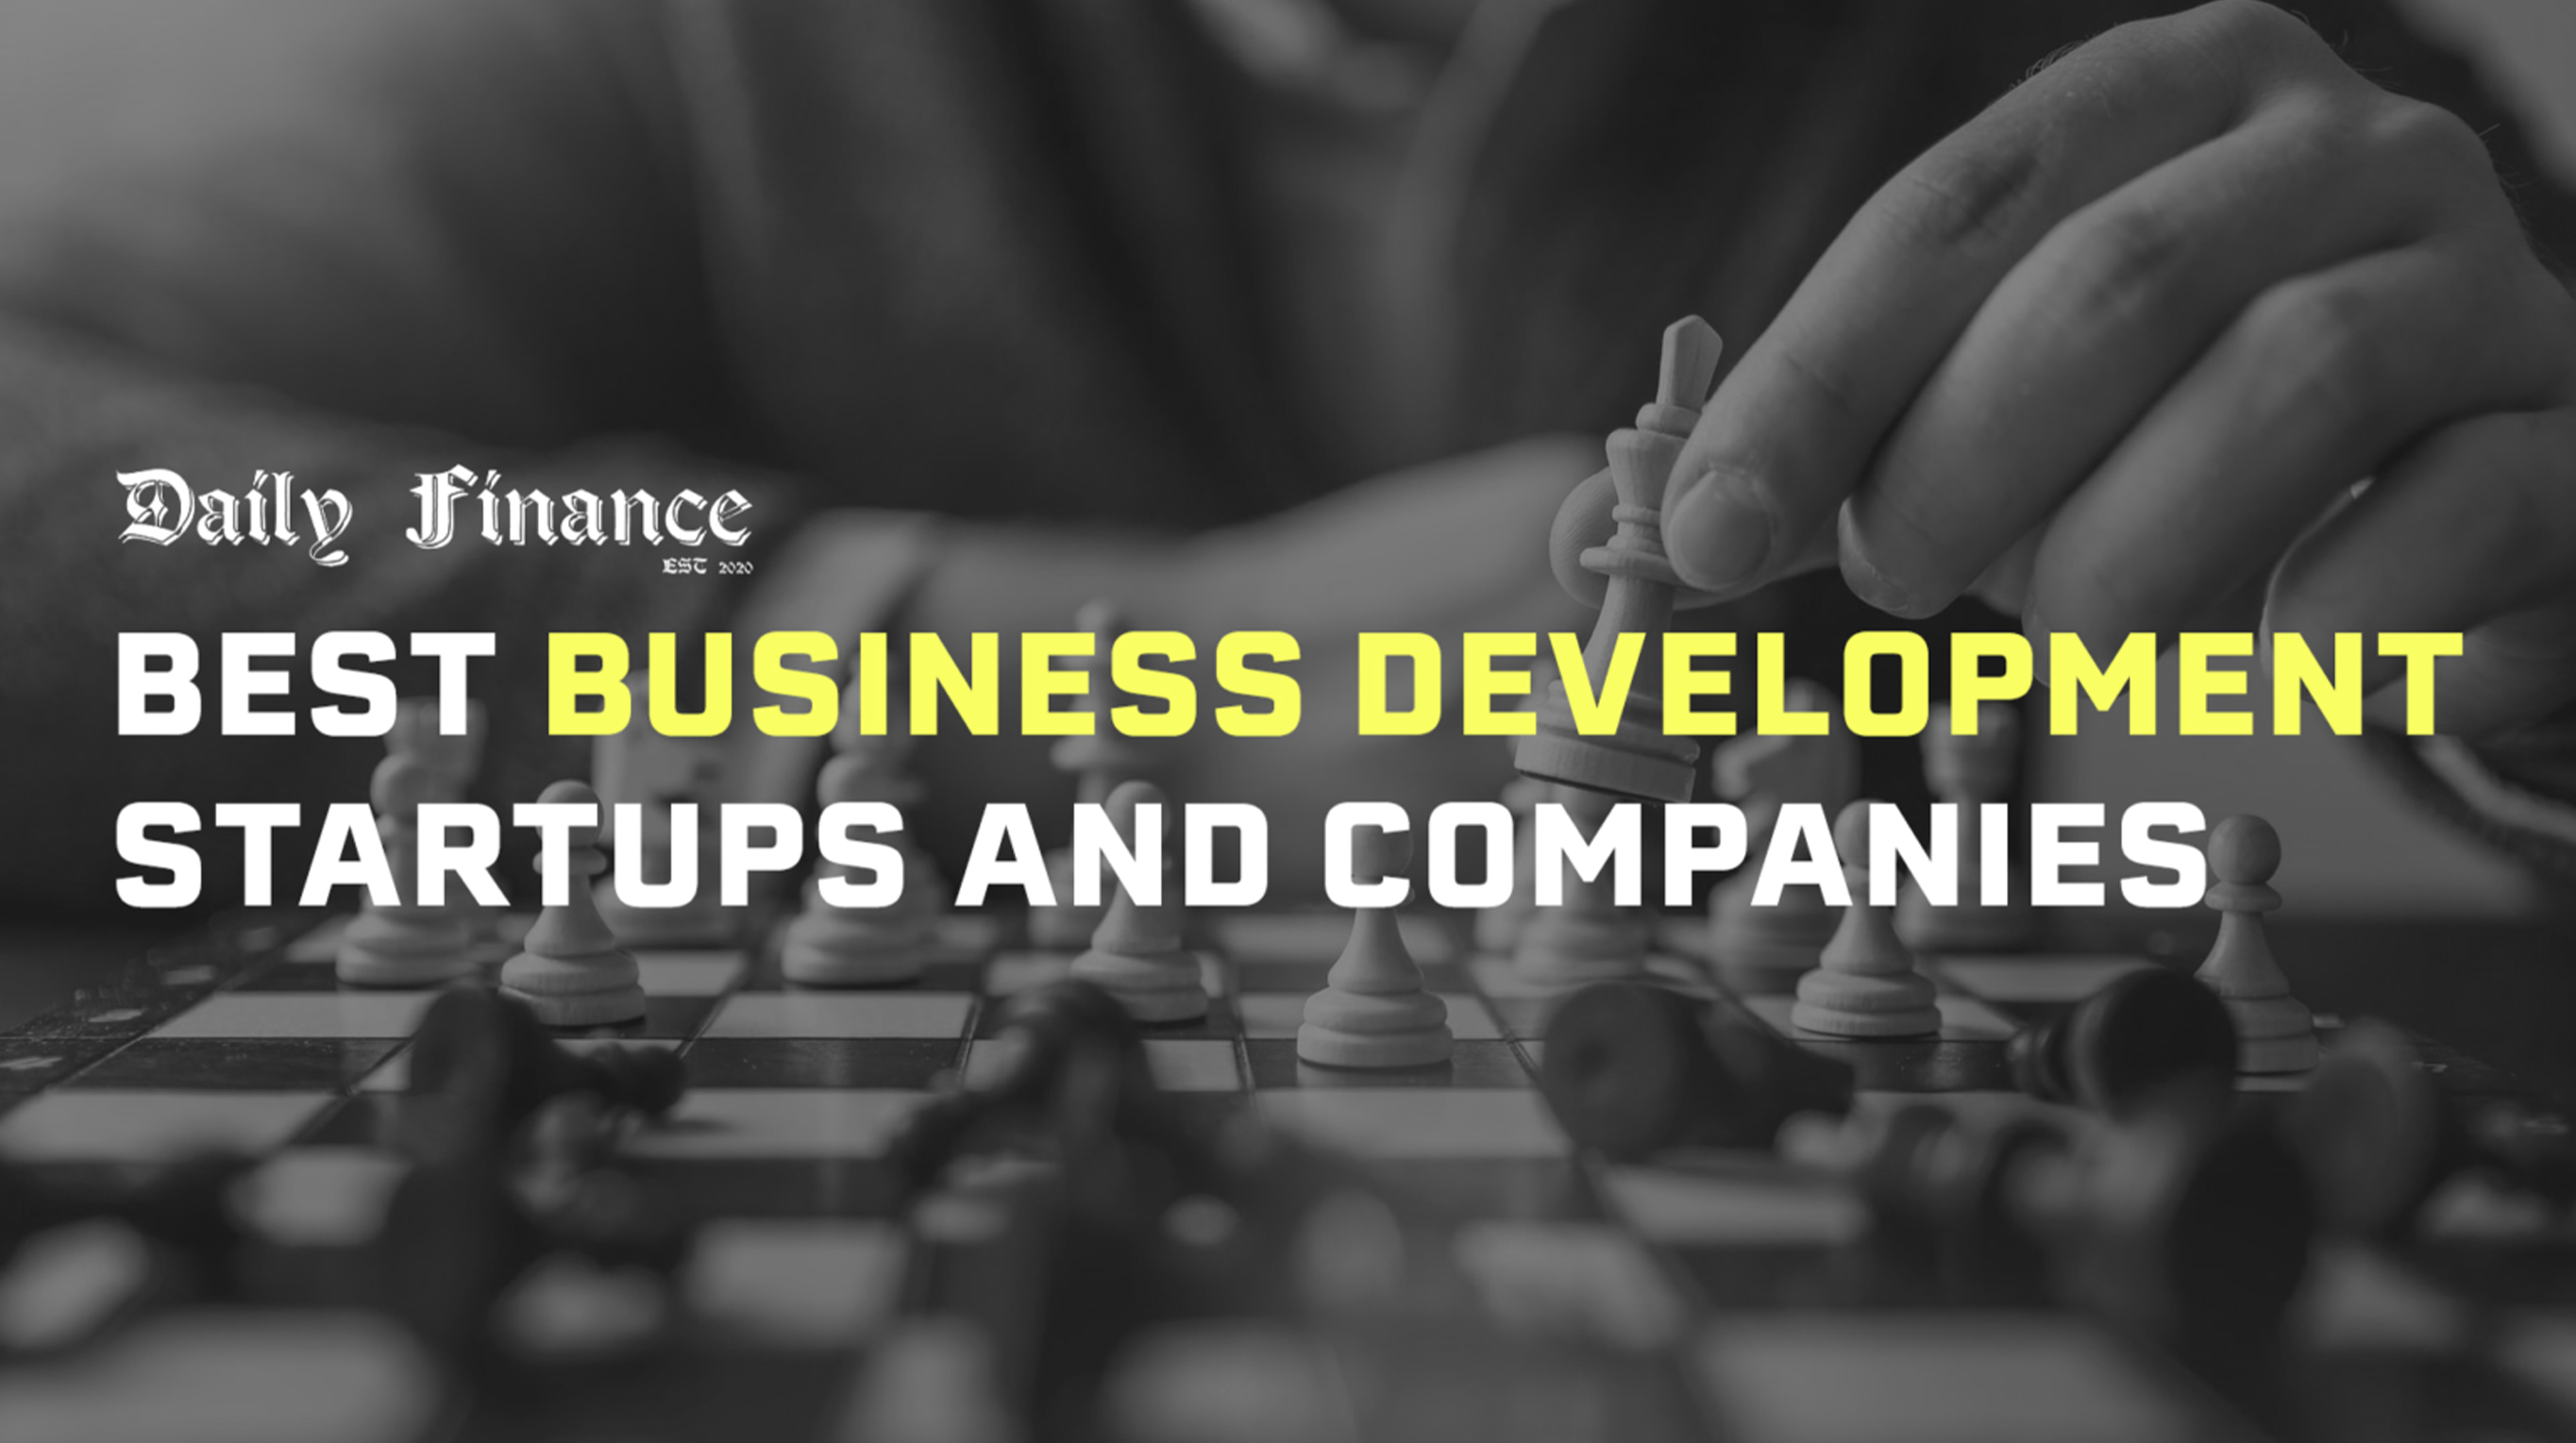 CODE/+/TRUST Recognized Among Top South Carolina Business Development Companies by Daily Finance